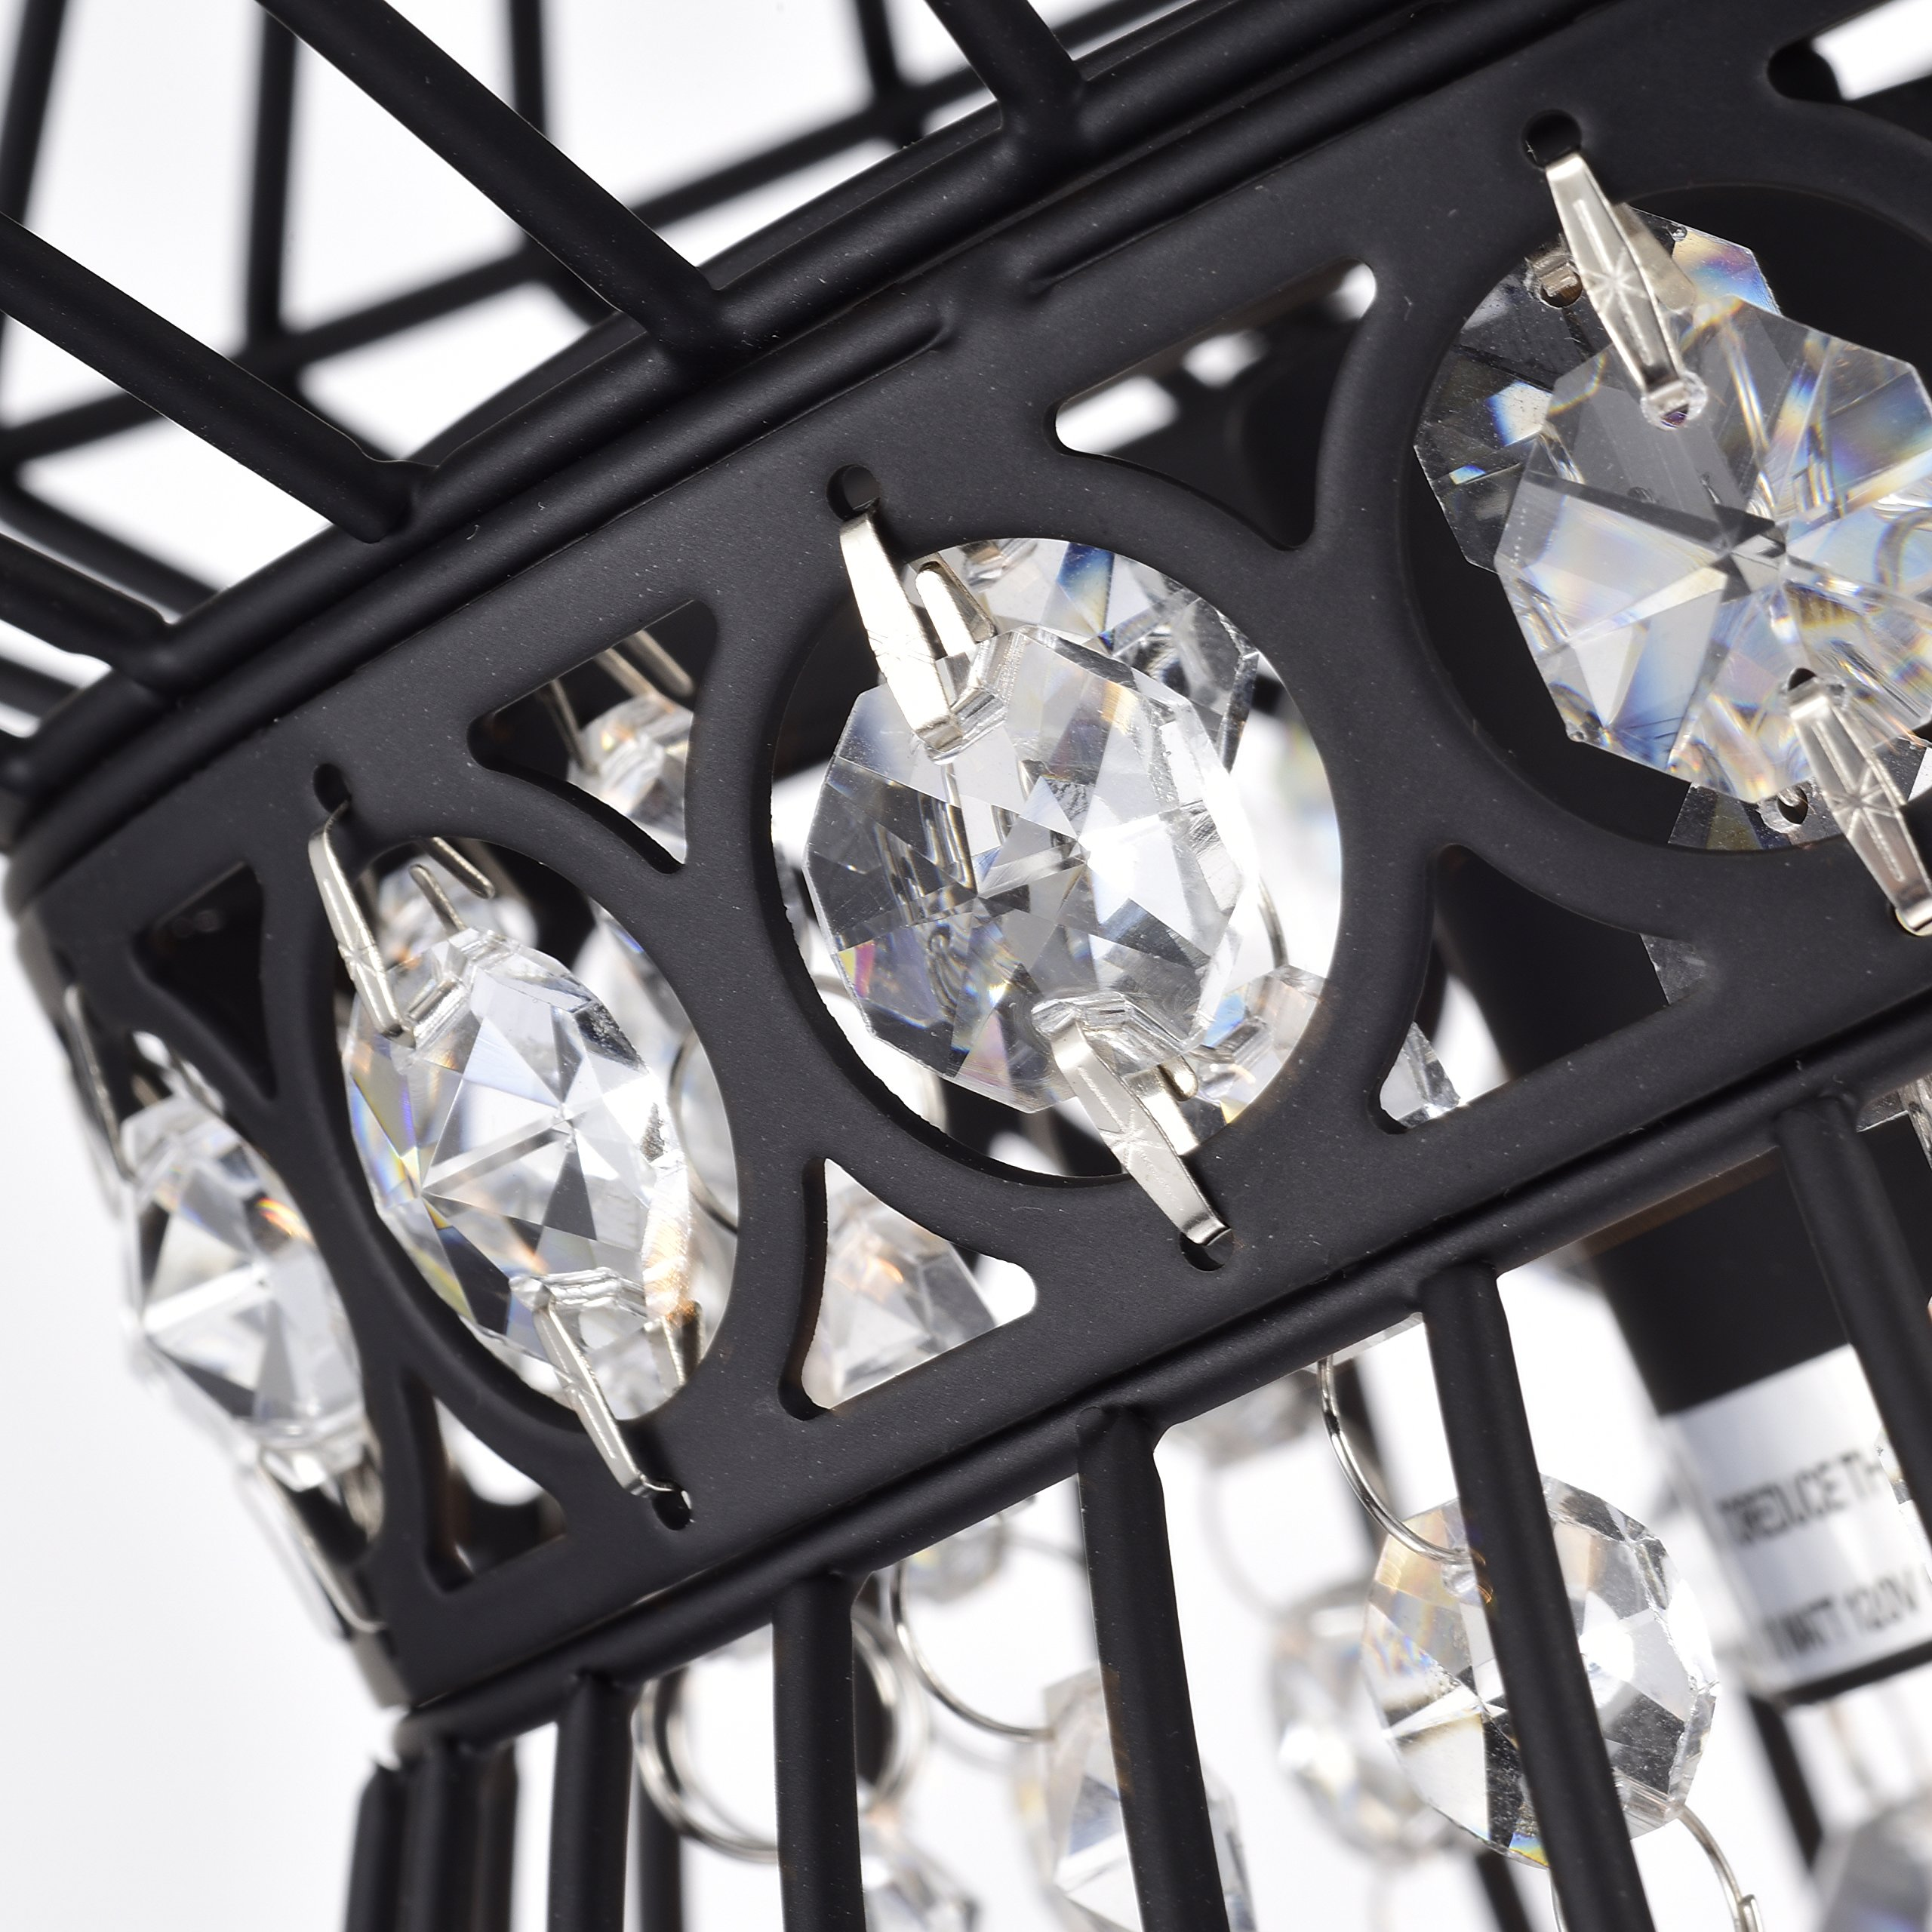 Black Chandeliers Crystal Chandelier Lighting Farmhouse Lighting Fixtures 1 Light 17045 by LaLuLa (Image #7)